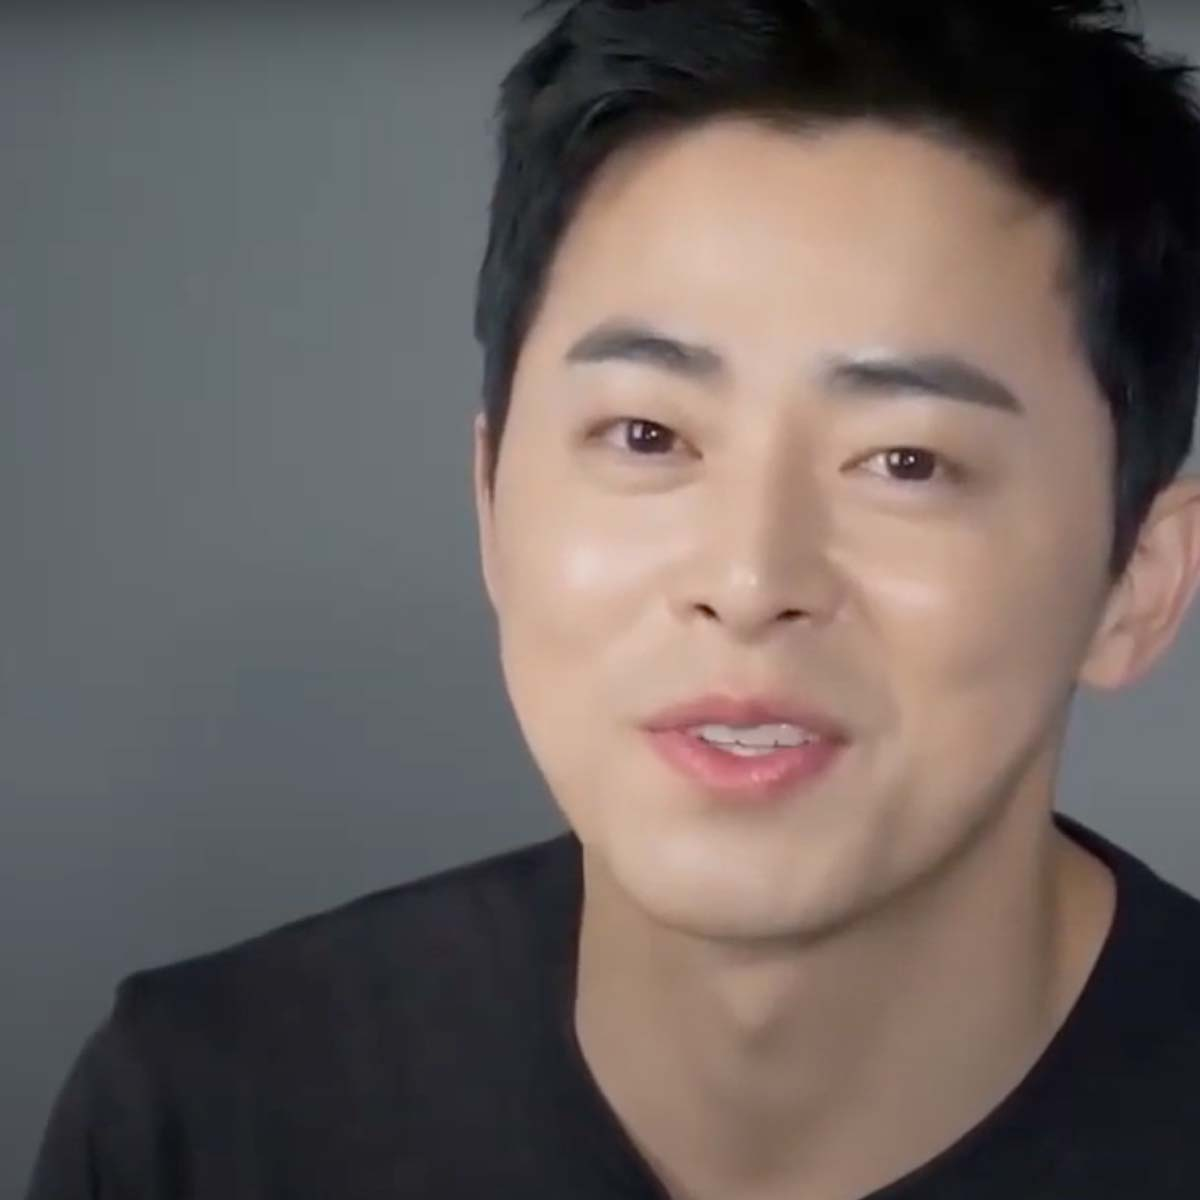 Jo Jung Suk Music Sheets Artists Play Songs On Virtual Piano